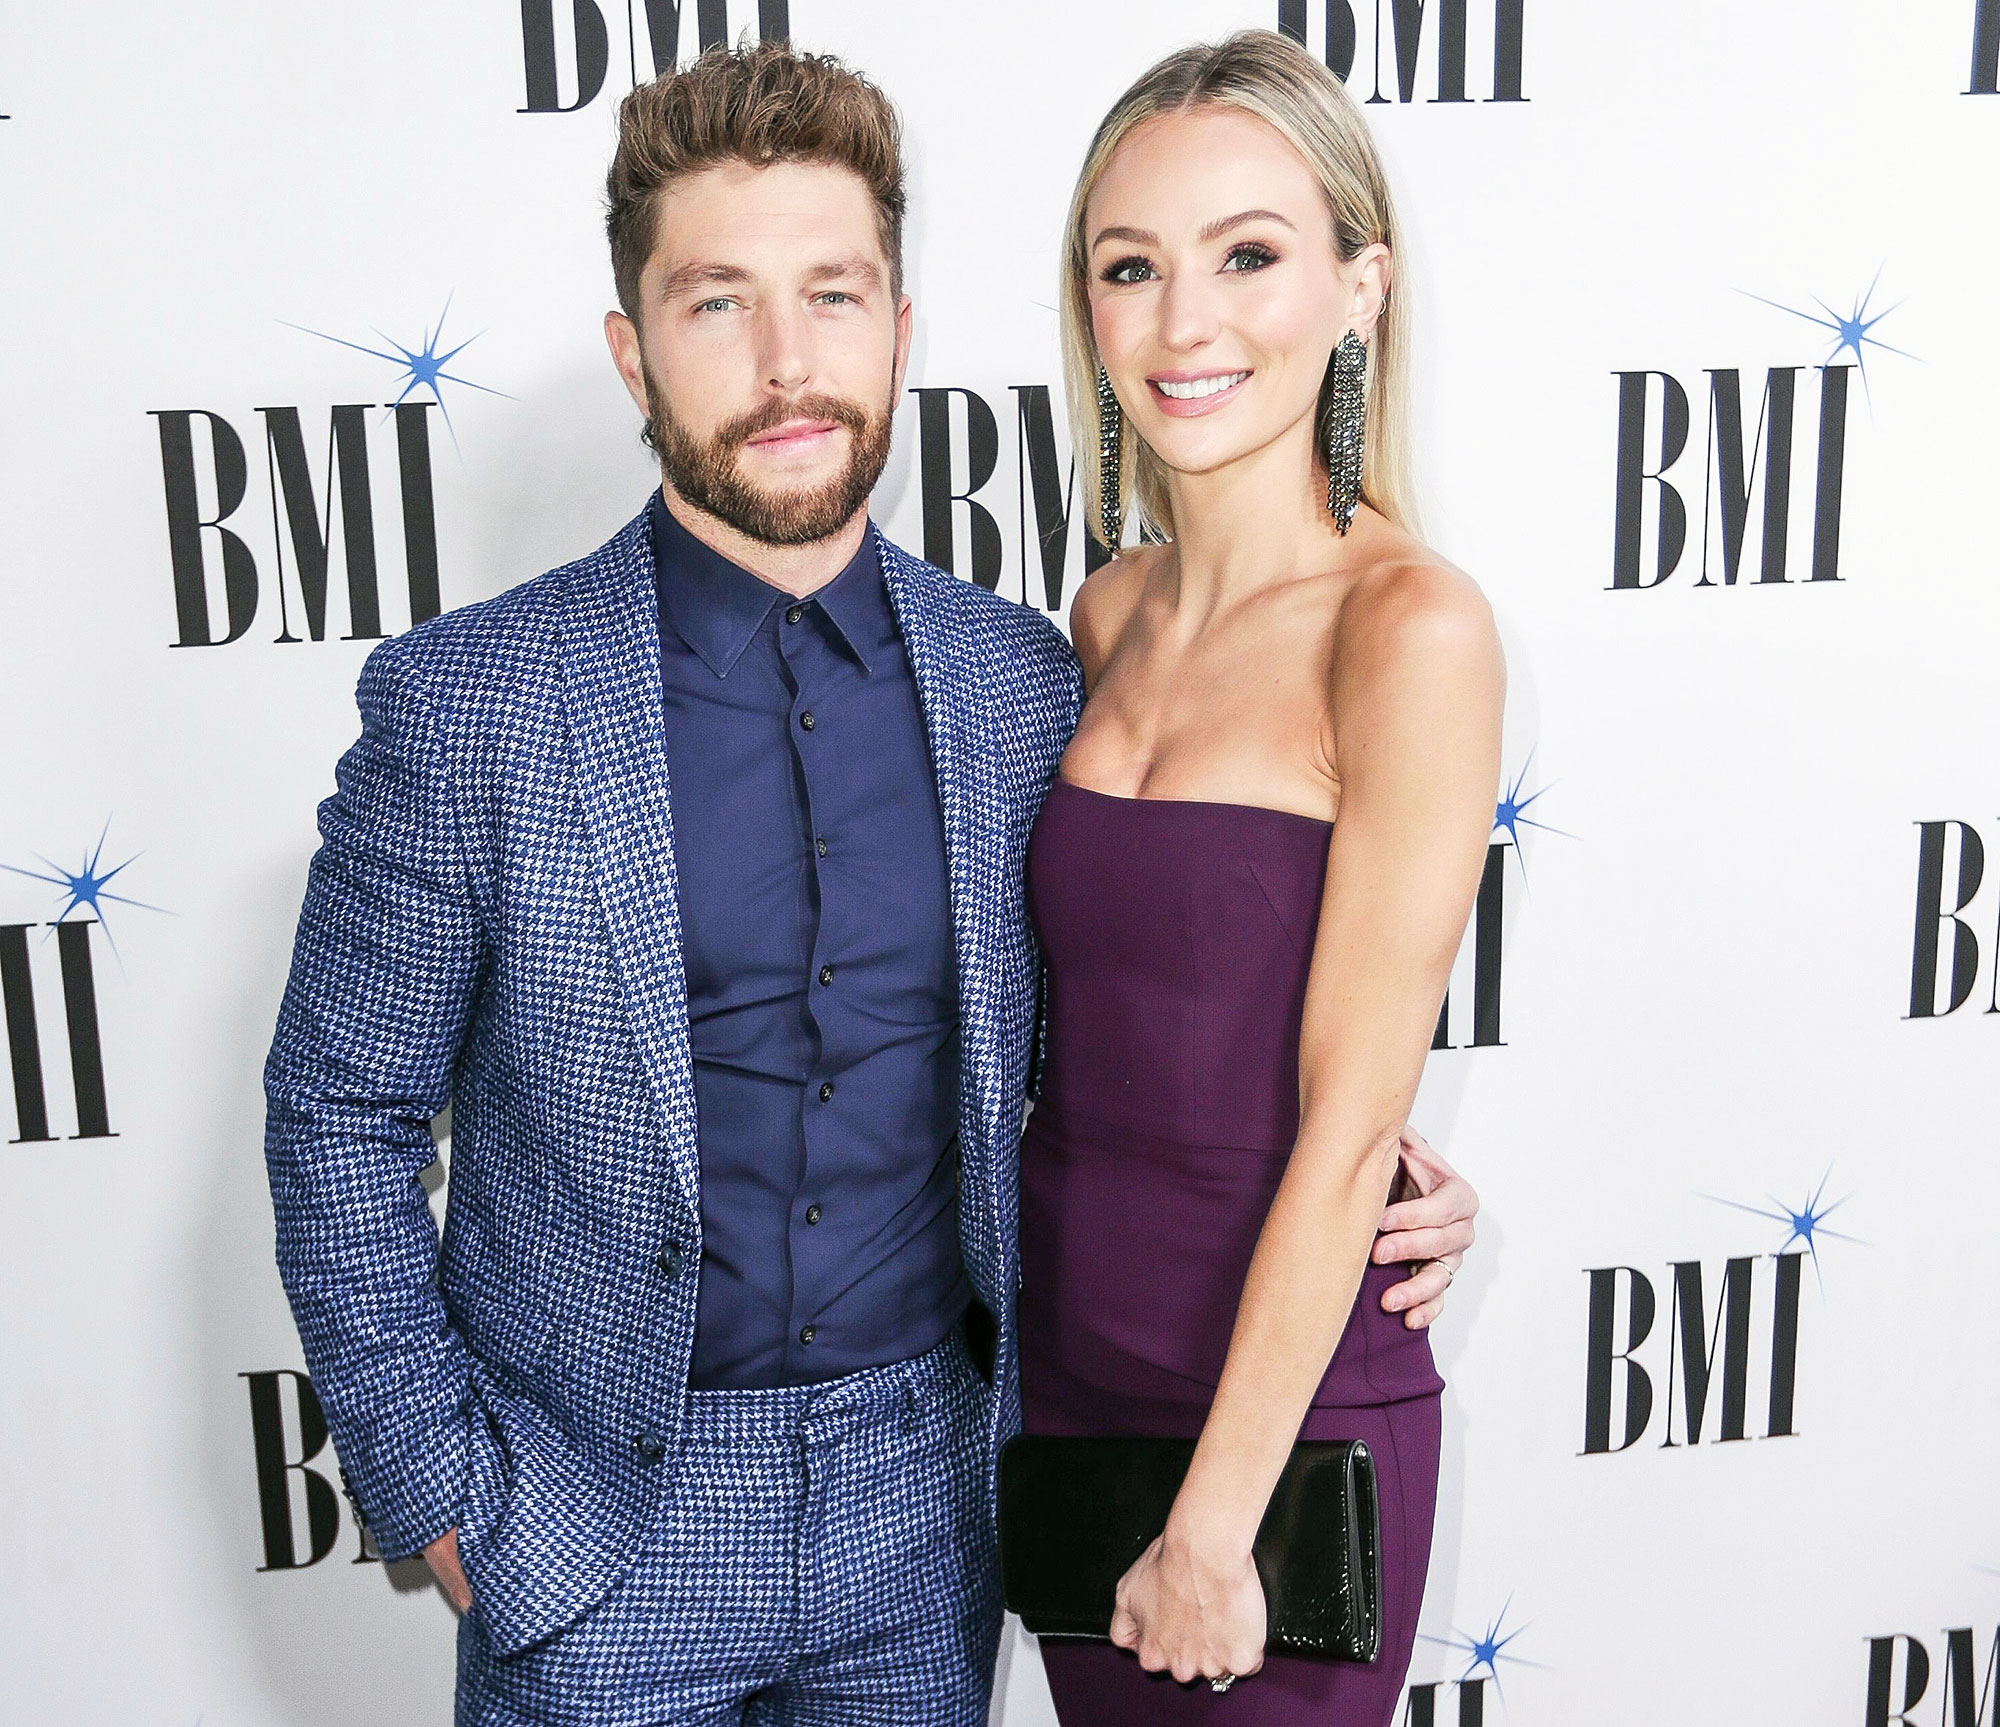 Chris Lane and Lauren Bushnell Have Gotten Closer While Quarantining